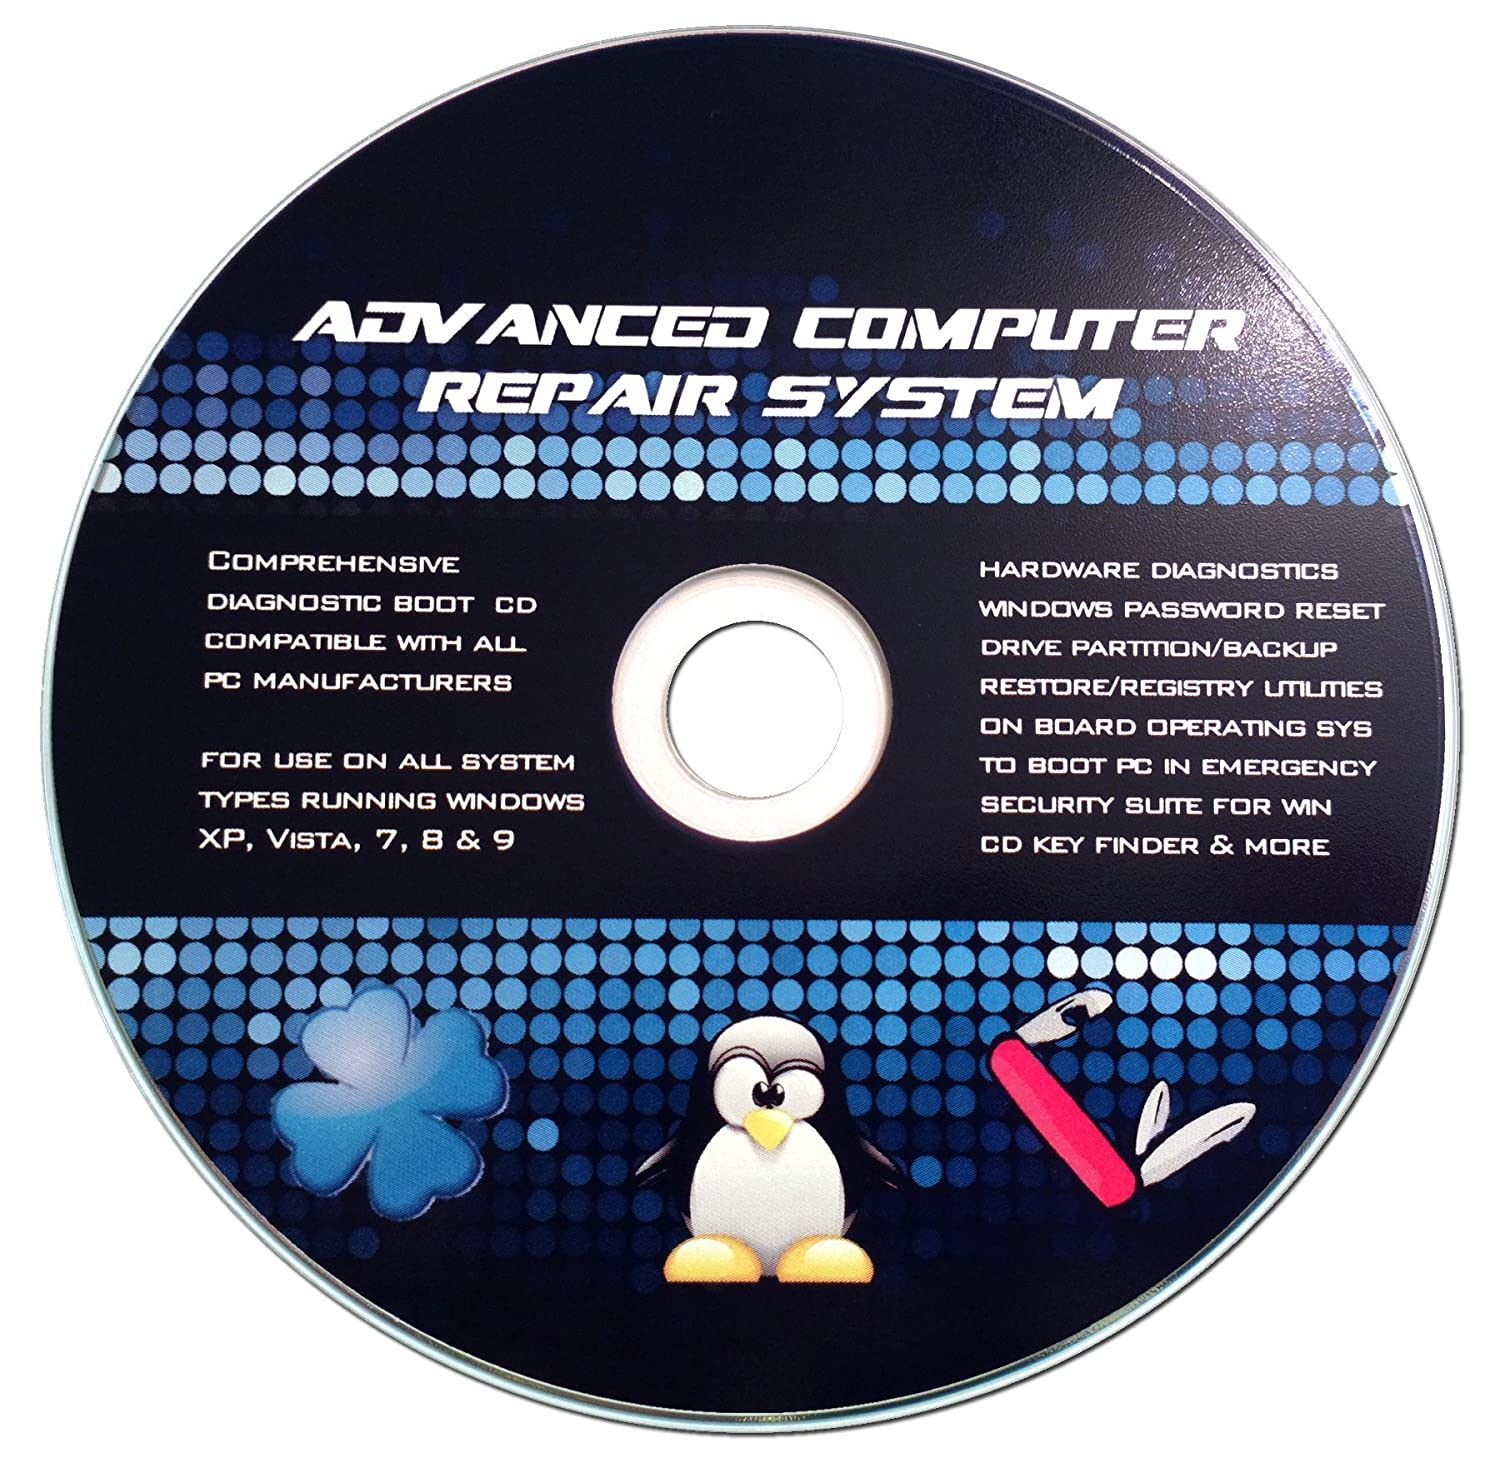 restore windows 7 from backup cd